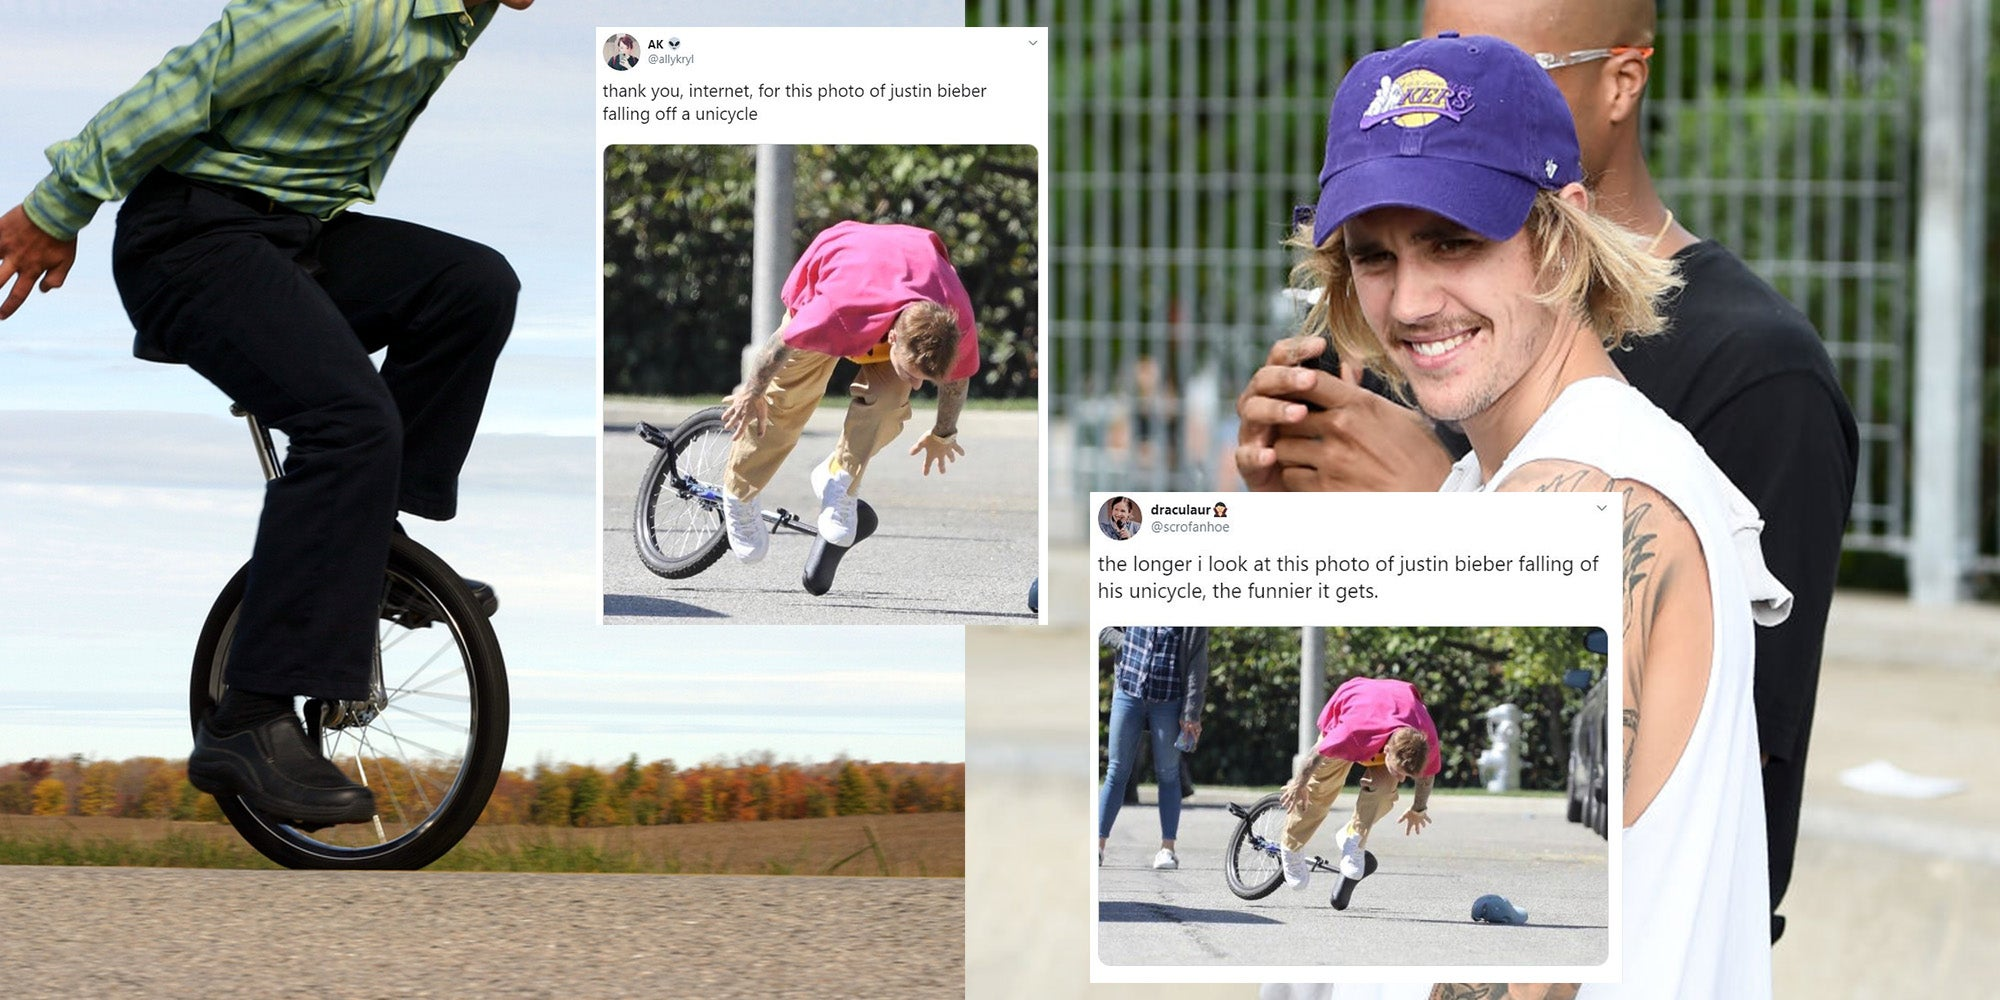 Justin Bieber fell off a unicycle and the pictures just won't stop giving